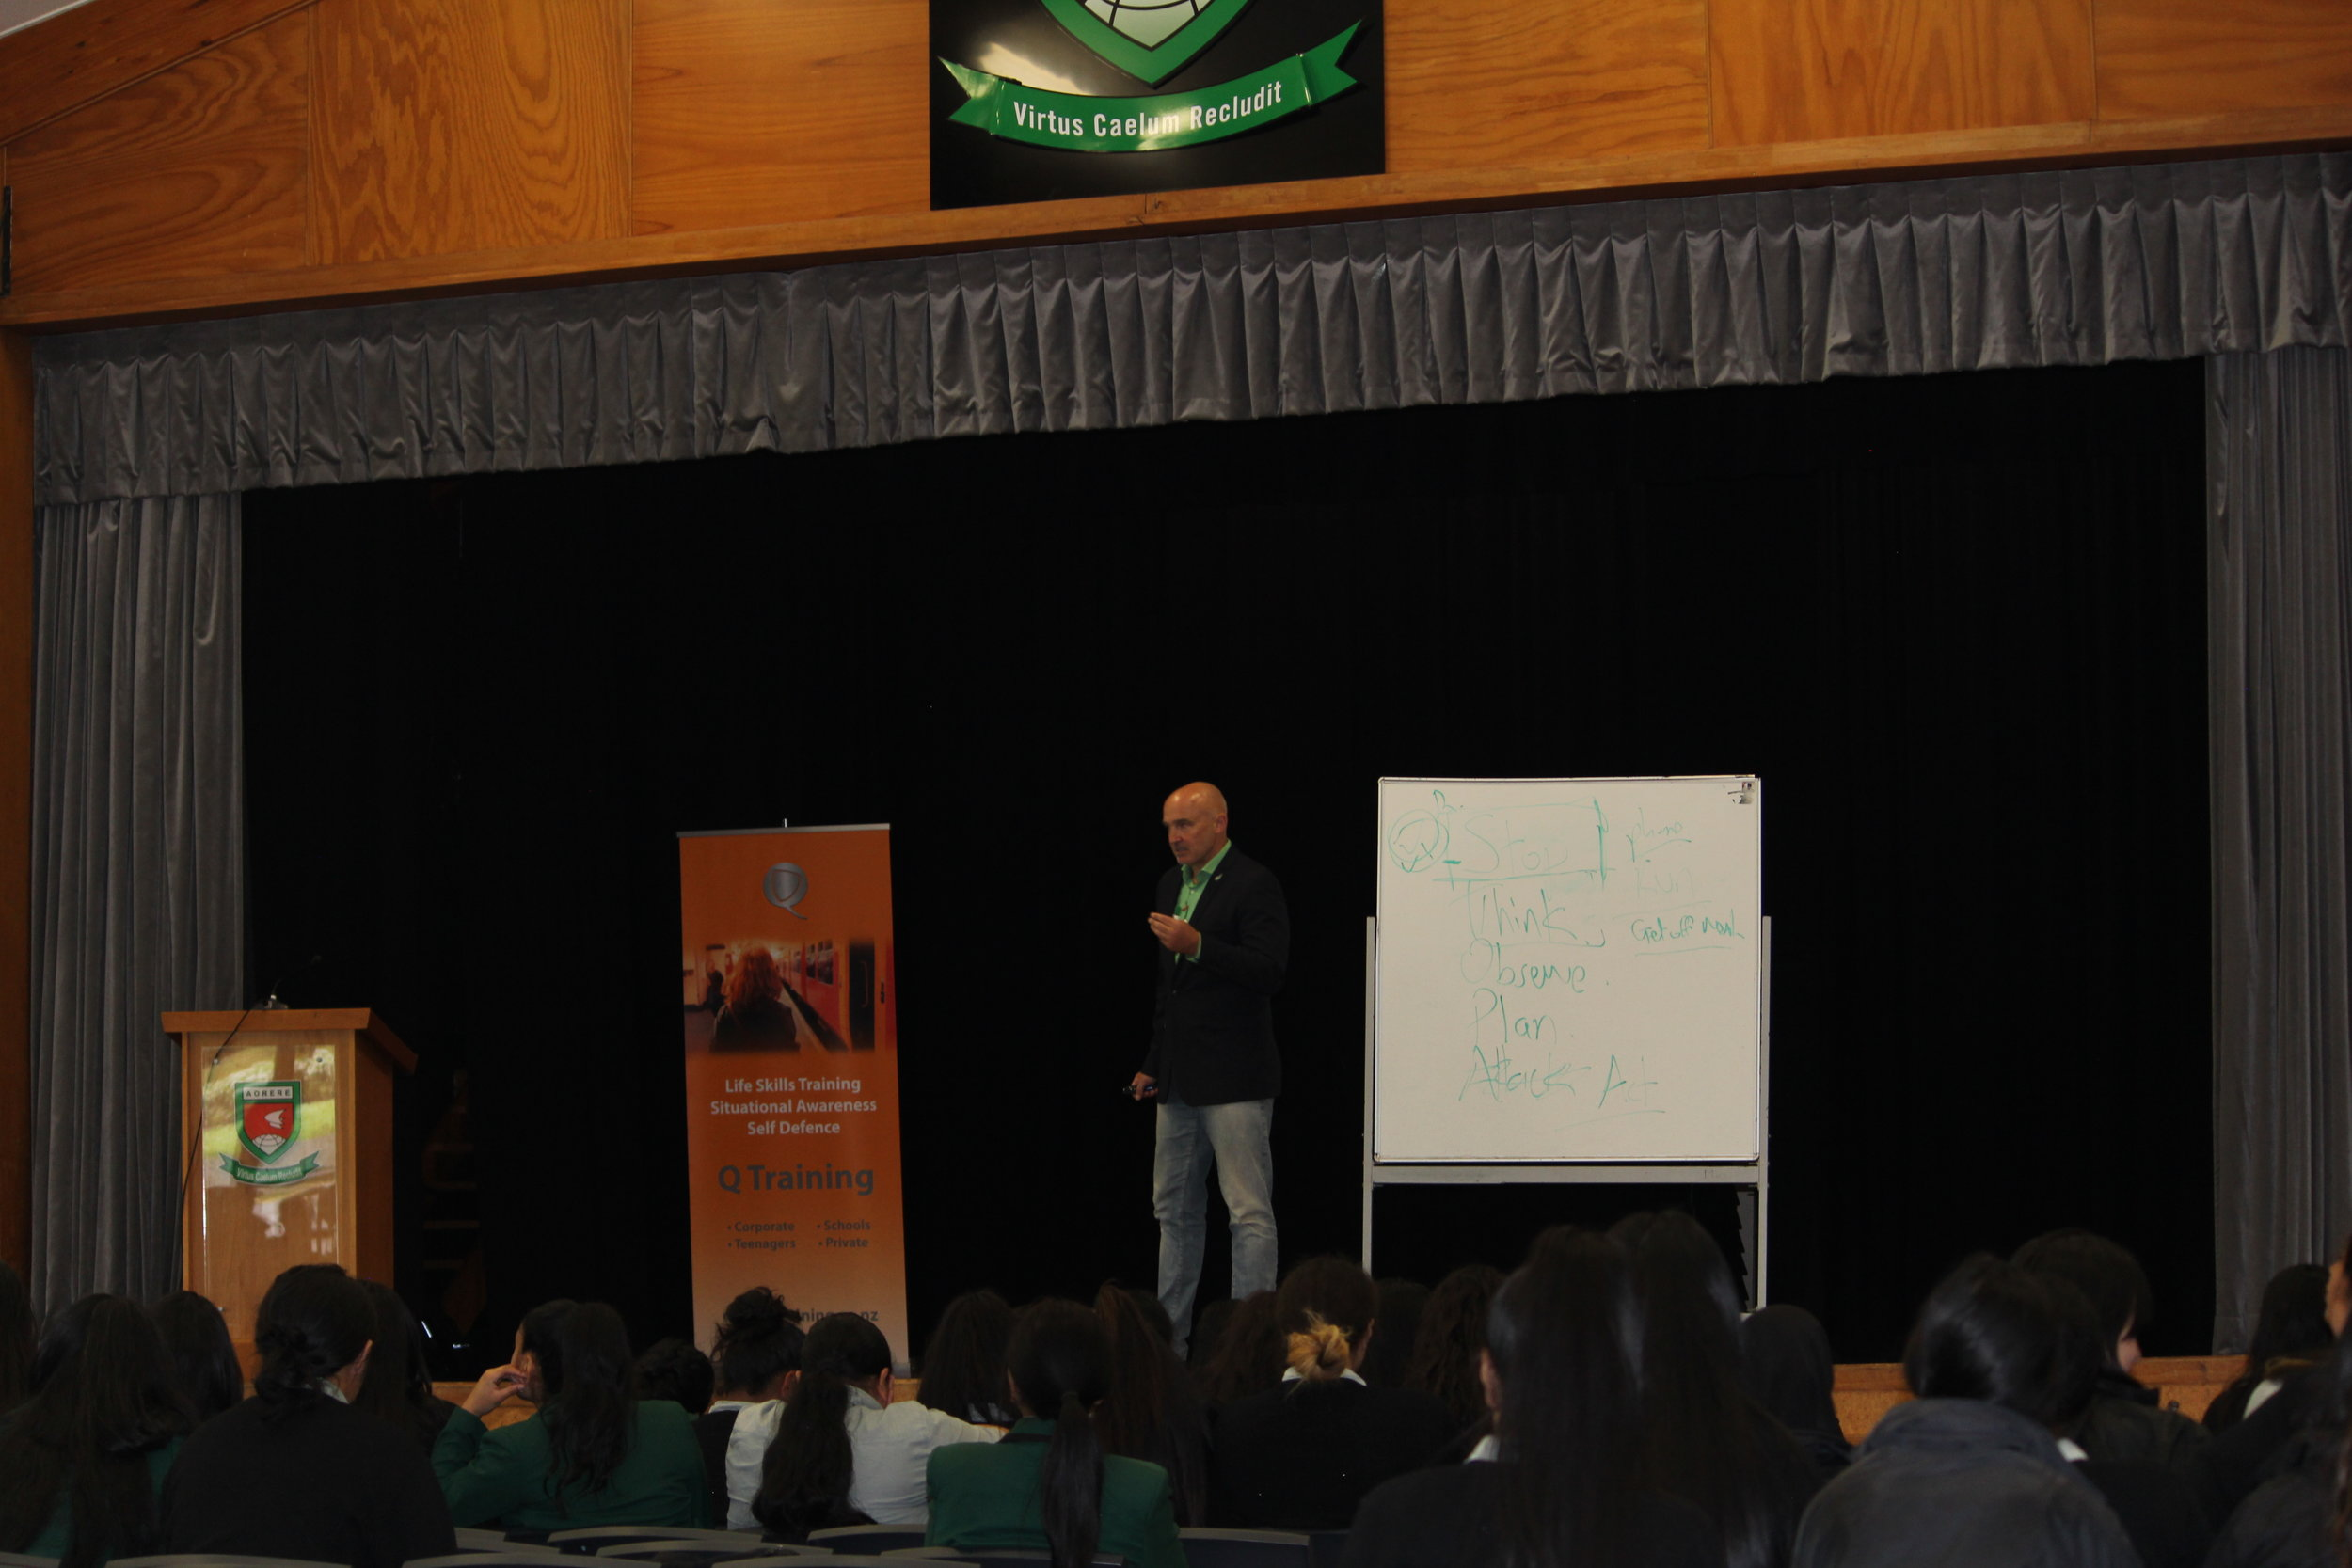 QRisk delivering life skills training to students in South Auckland